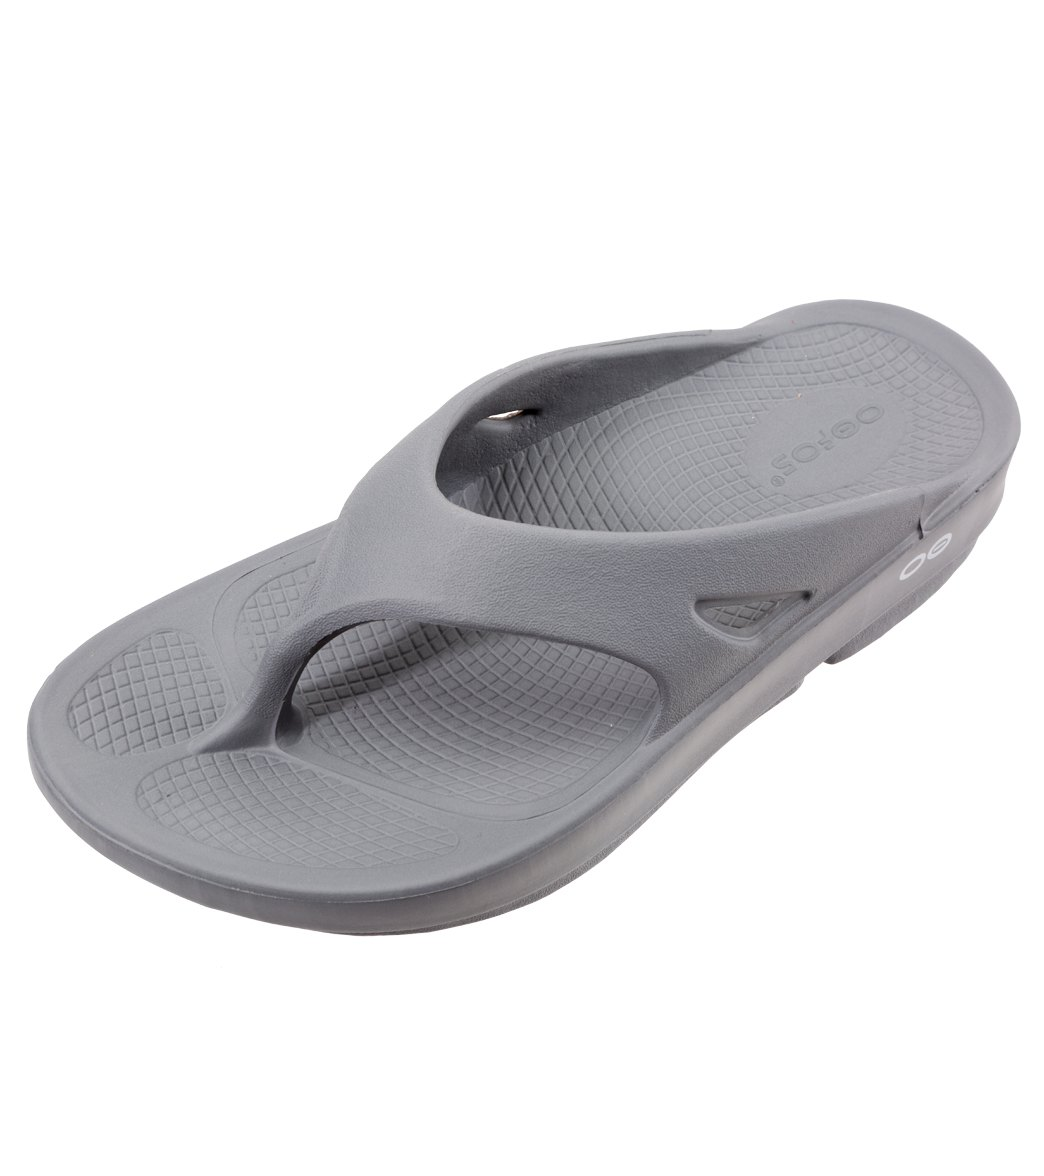 bb203cc35863 Oofos OOriginal Recovery Flip Flop at SwimOutlet.com - Free Shipping